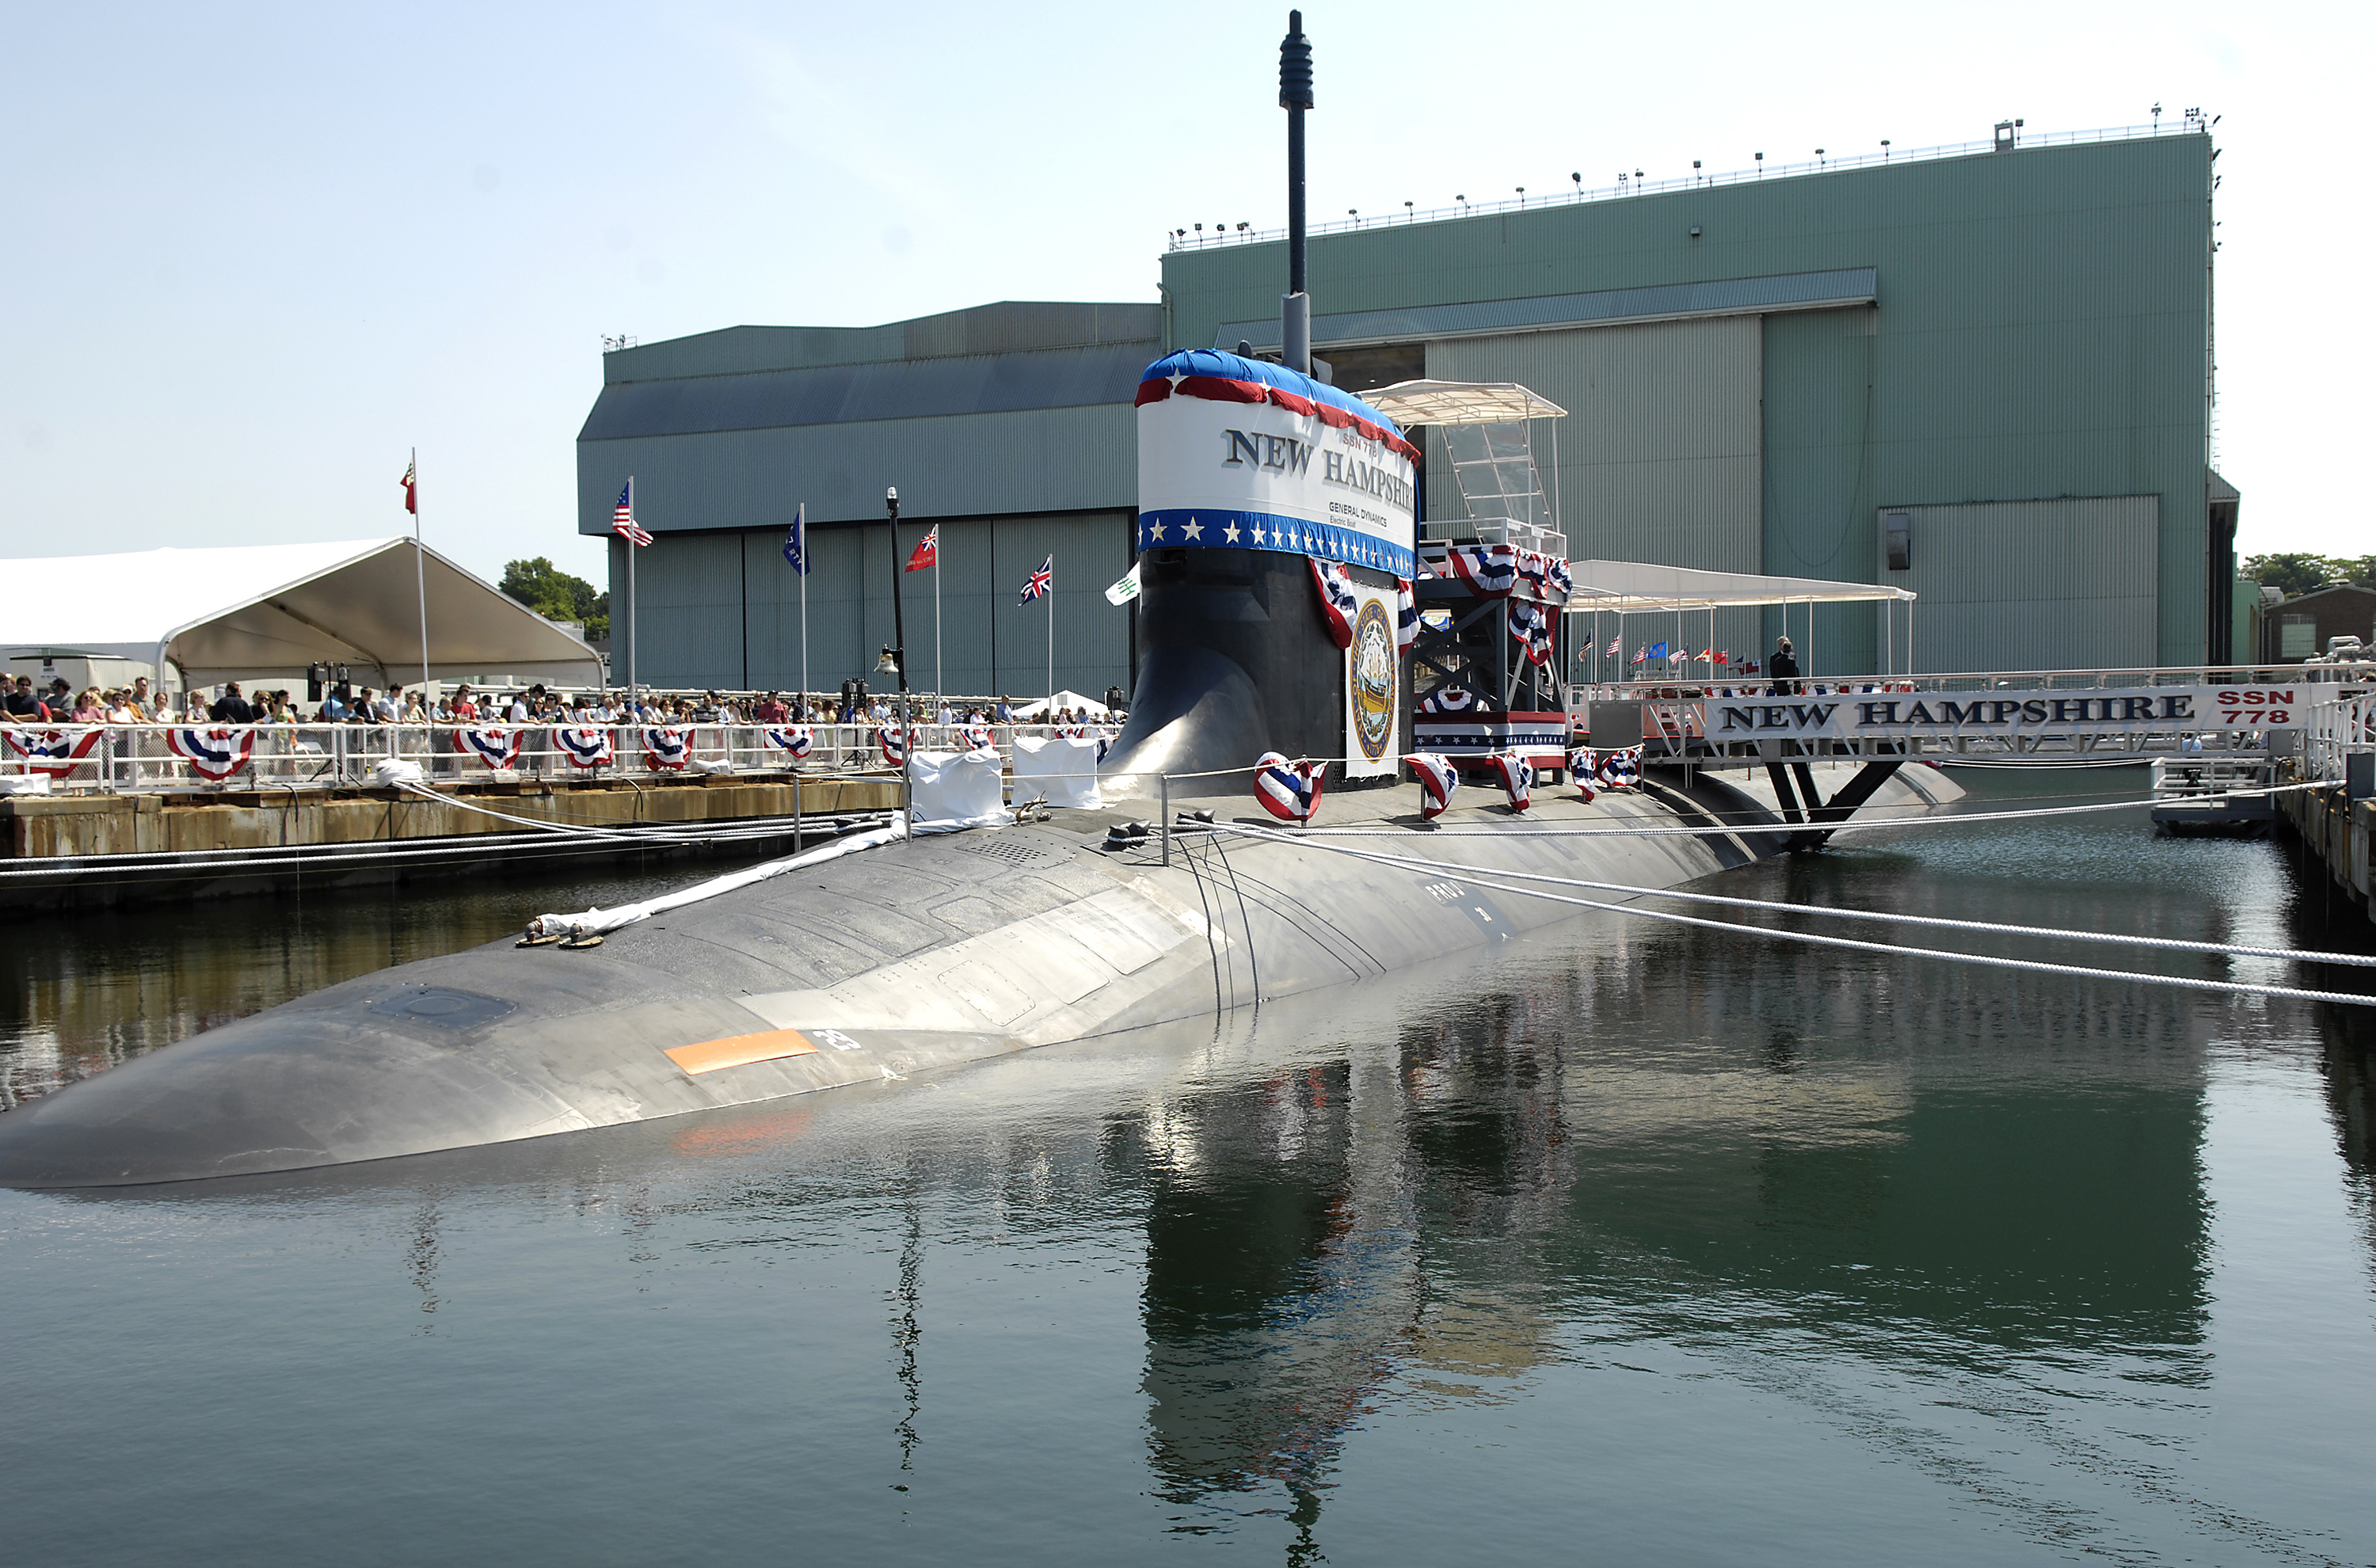 US Navy 080621-N-8467N-001 Pre-commissioning Unit New Hampshire (SSN 778) sits moored to the pier at General Dynamics Electric Boat shipyard moments before her christening ceremony commenced.jpg